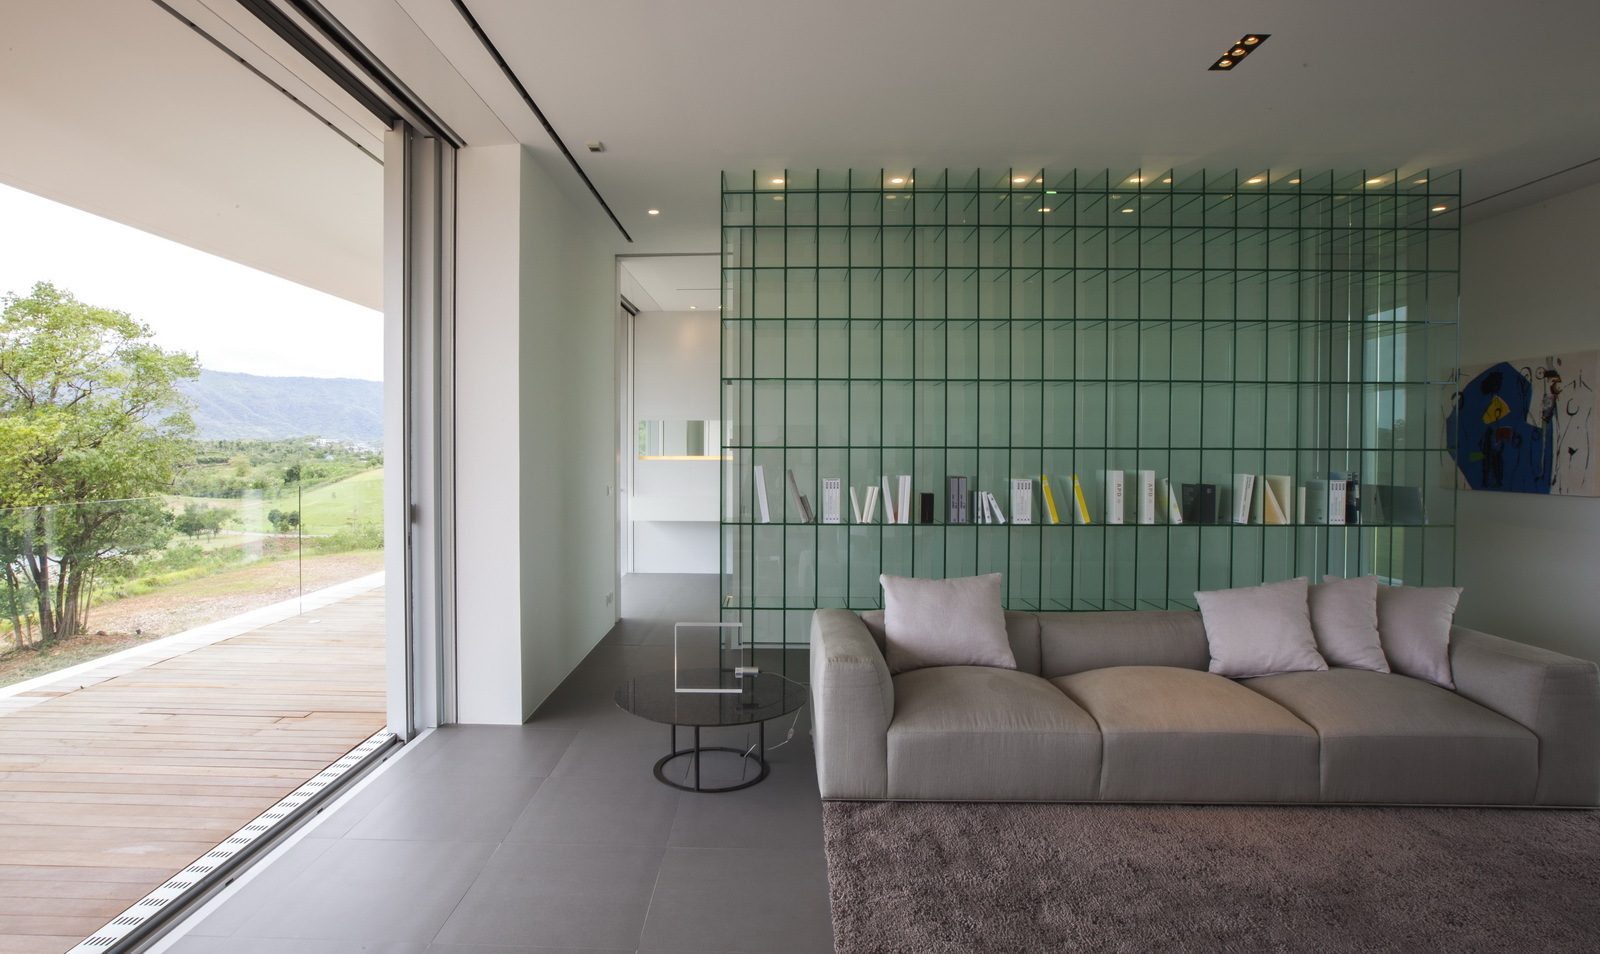 Persianas De Aluminio Para Ventanas World's Longest House – 150 Meter | Showme Design